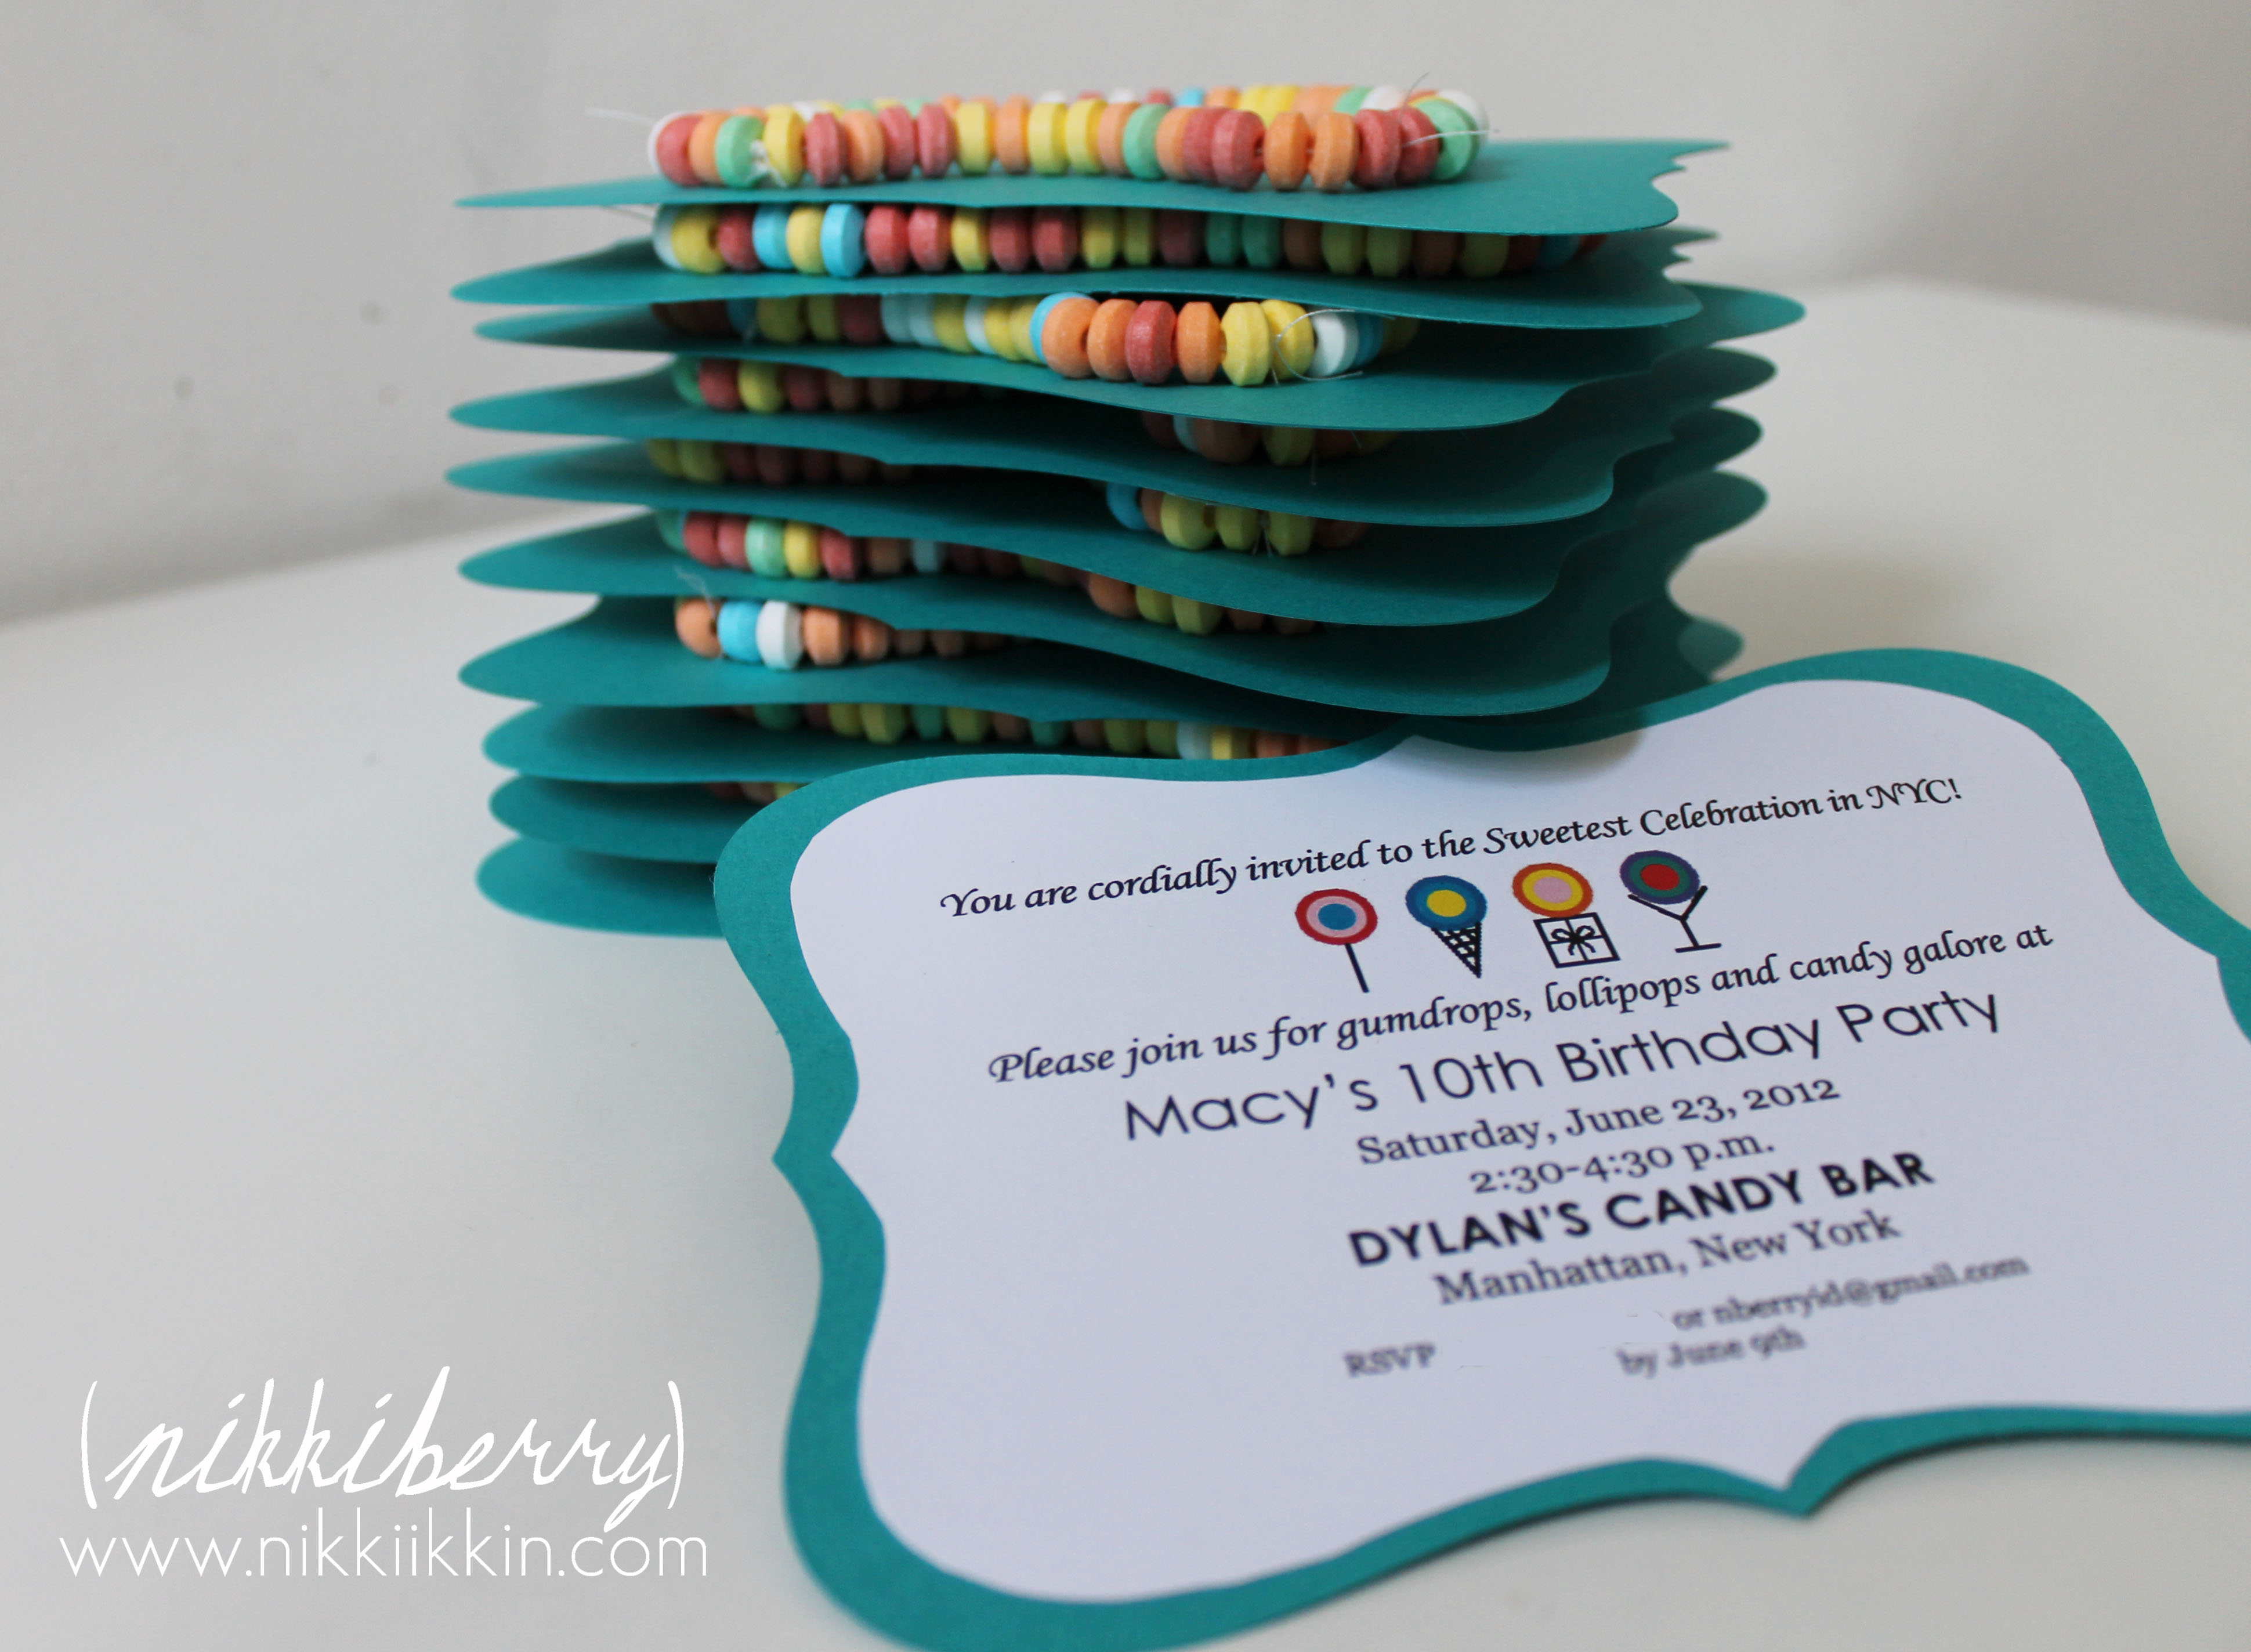 10th birthday party invitations ; 10Th-Birthday-Party-Invitations-and-get-ideas-how-to-make-divine-birthday-Invitation-appearance-1